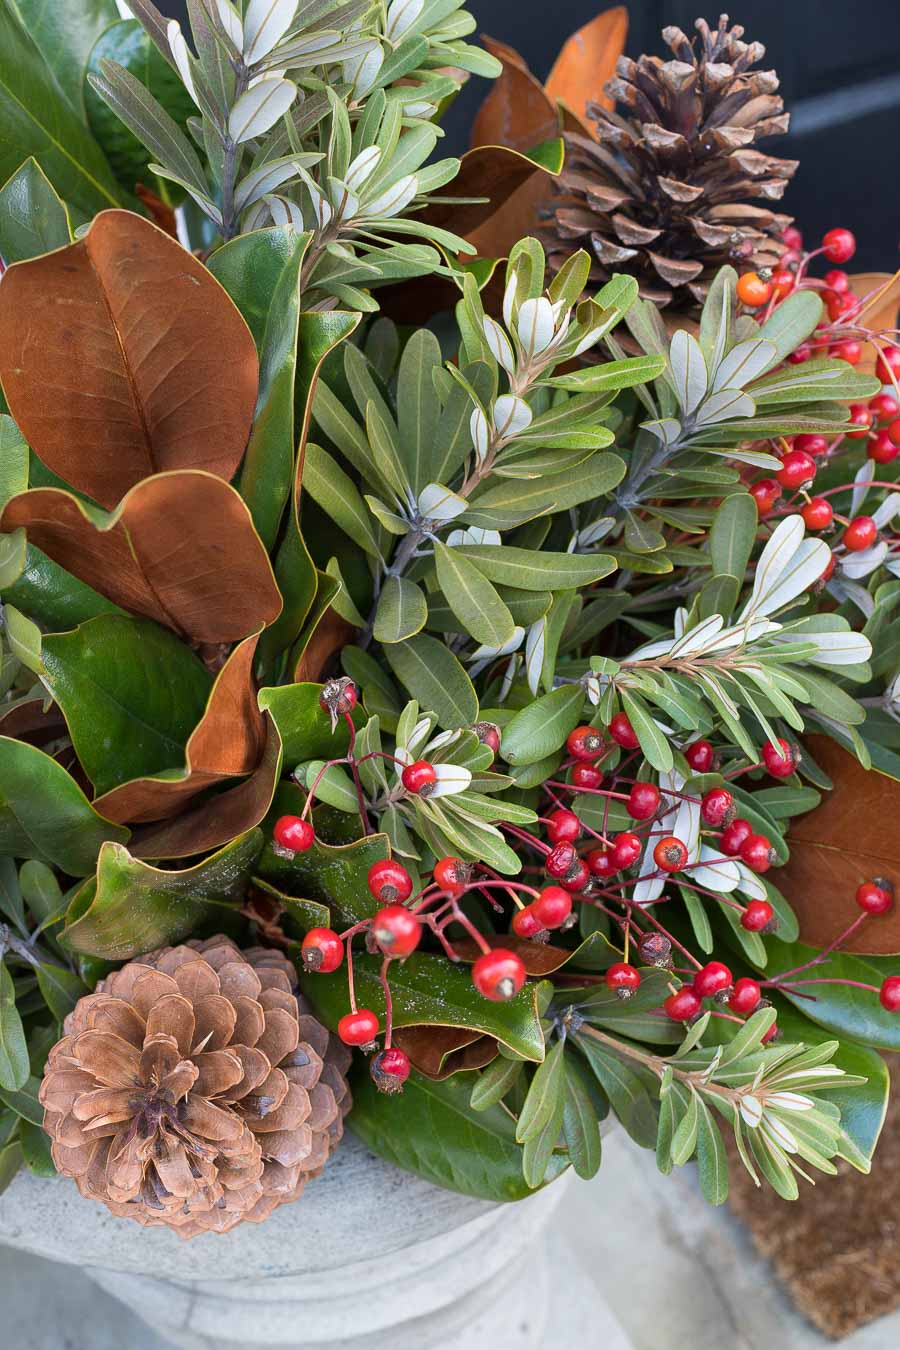 Love the mix of magnolia branches, greenery, rose hips, and pinecones in these holiday planters!